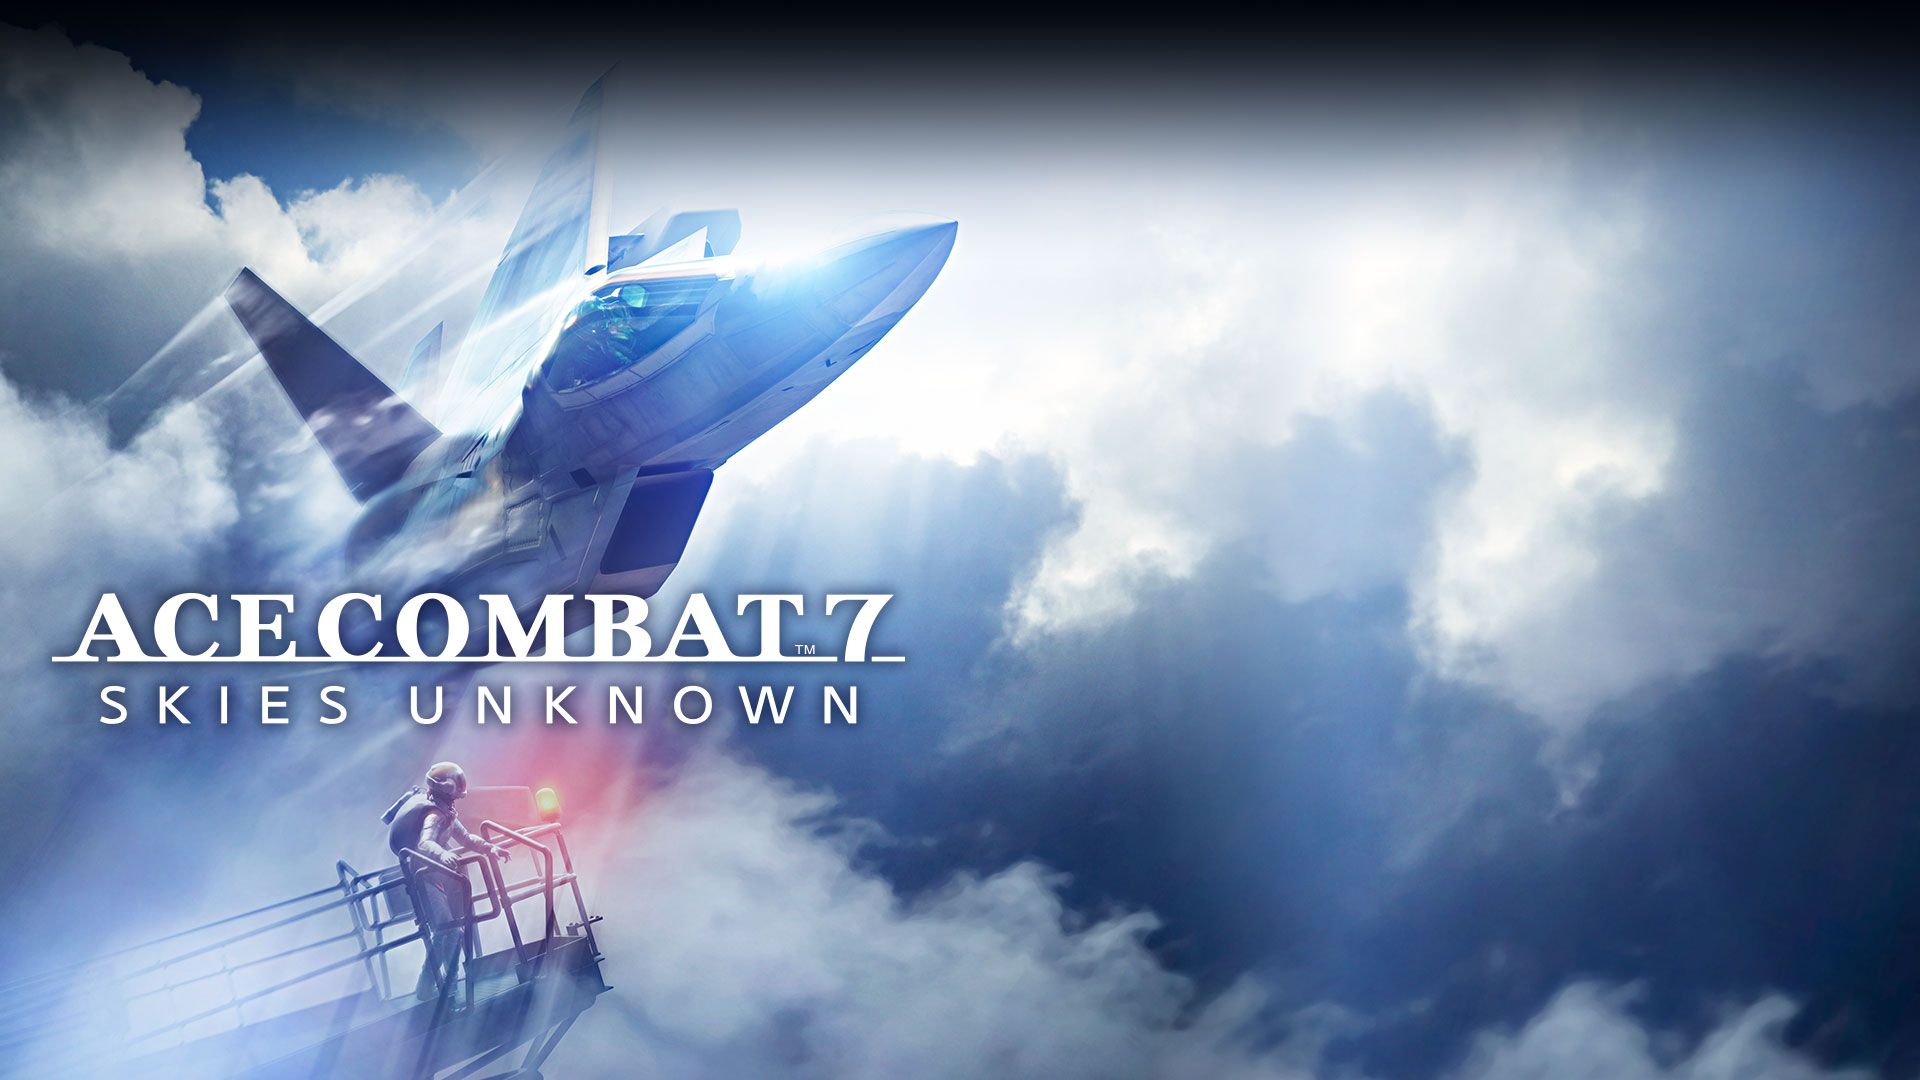 Ace Combat™ 7 Skies Unknown, Fighter jet streaking through the clouds.